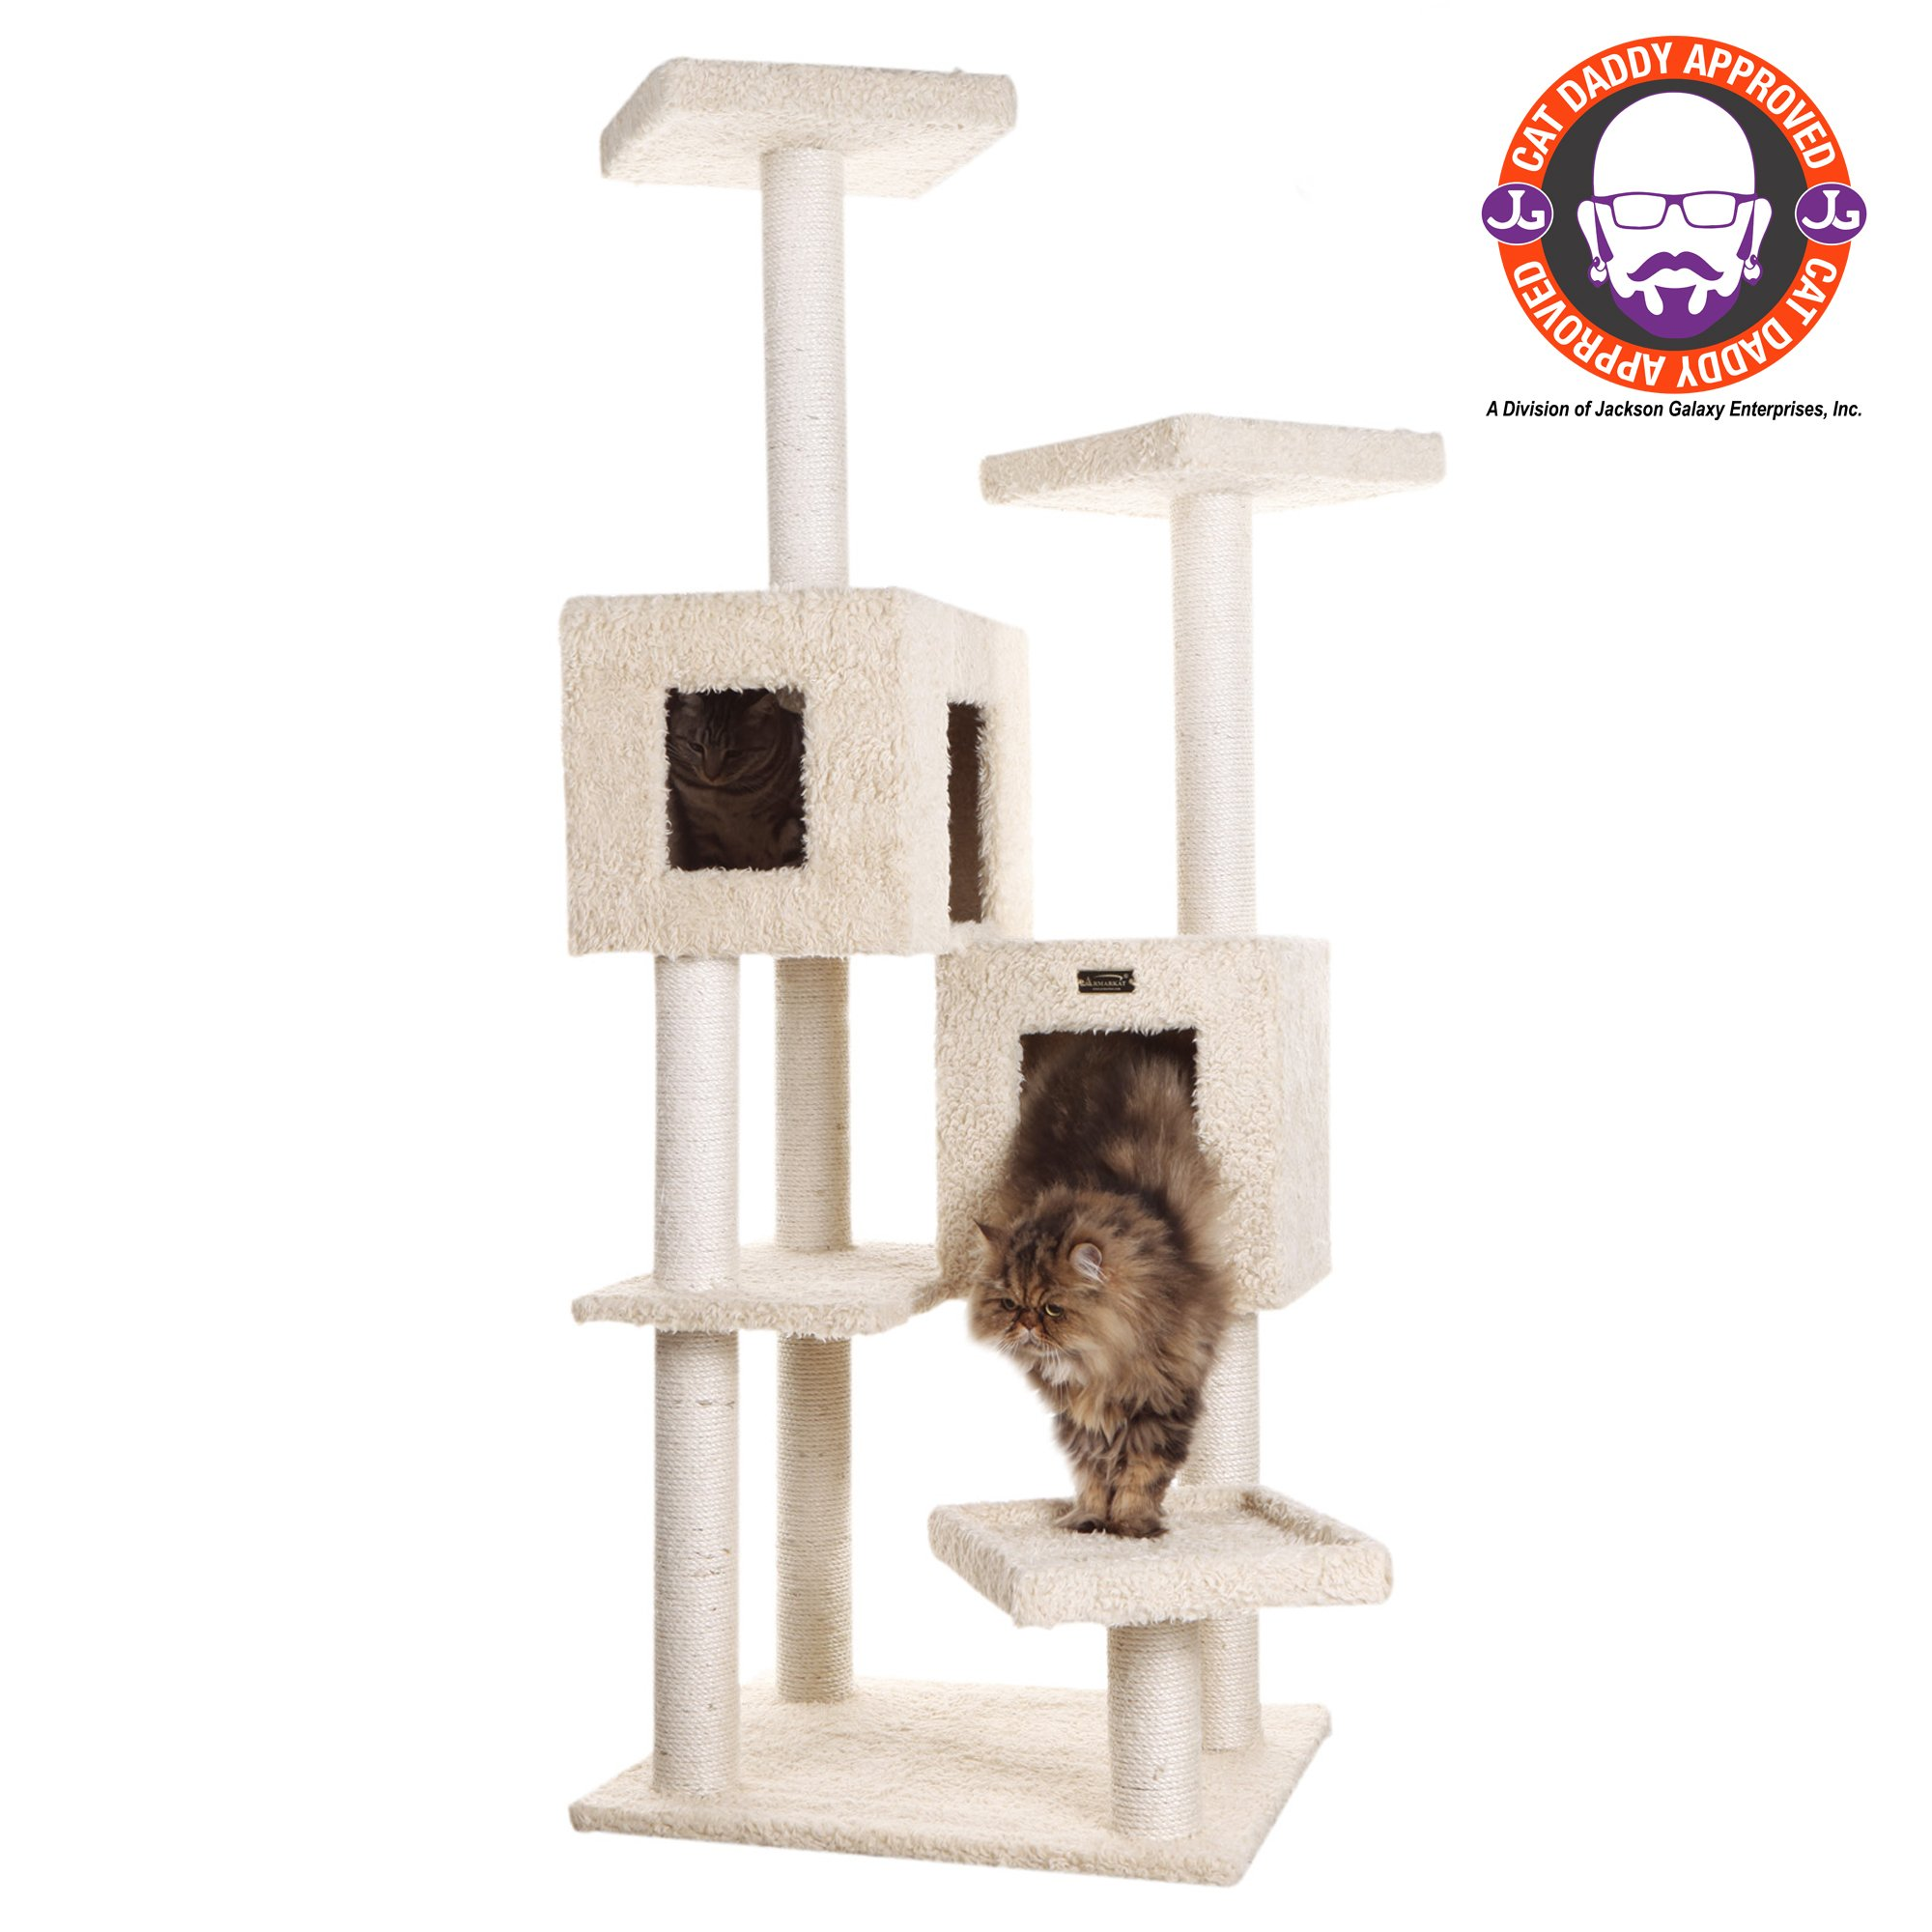 Nov 24,  · Give your feline friend the perfect place to perch, play and hide away with the PetPals Group Cabana Cat Condo. This cabana-shaped bed house will provide your pet with private space while she sleeps. The outside is thick woven leaves which keeps your pet warm and feeling secure.